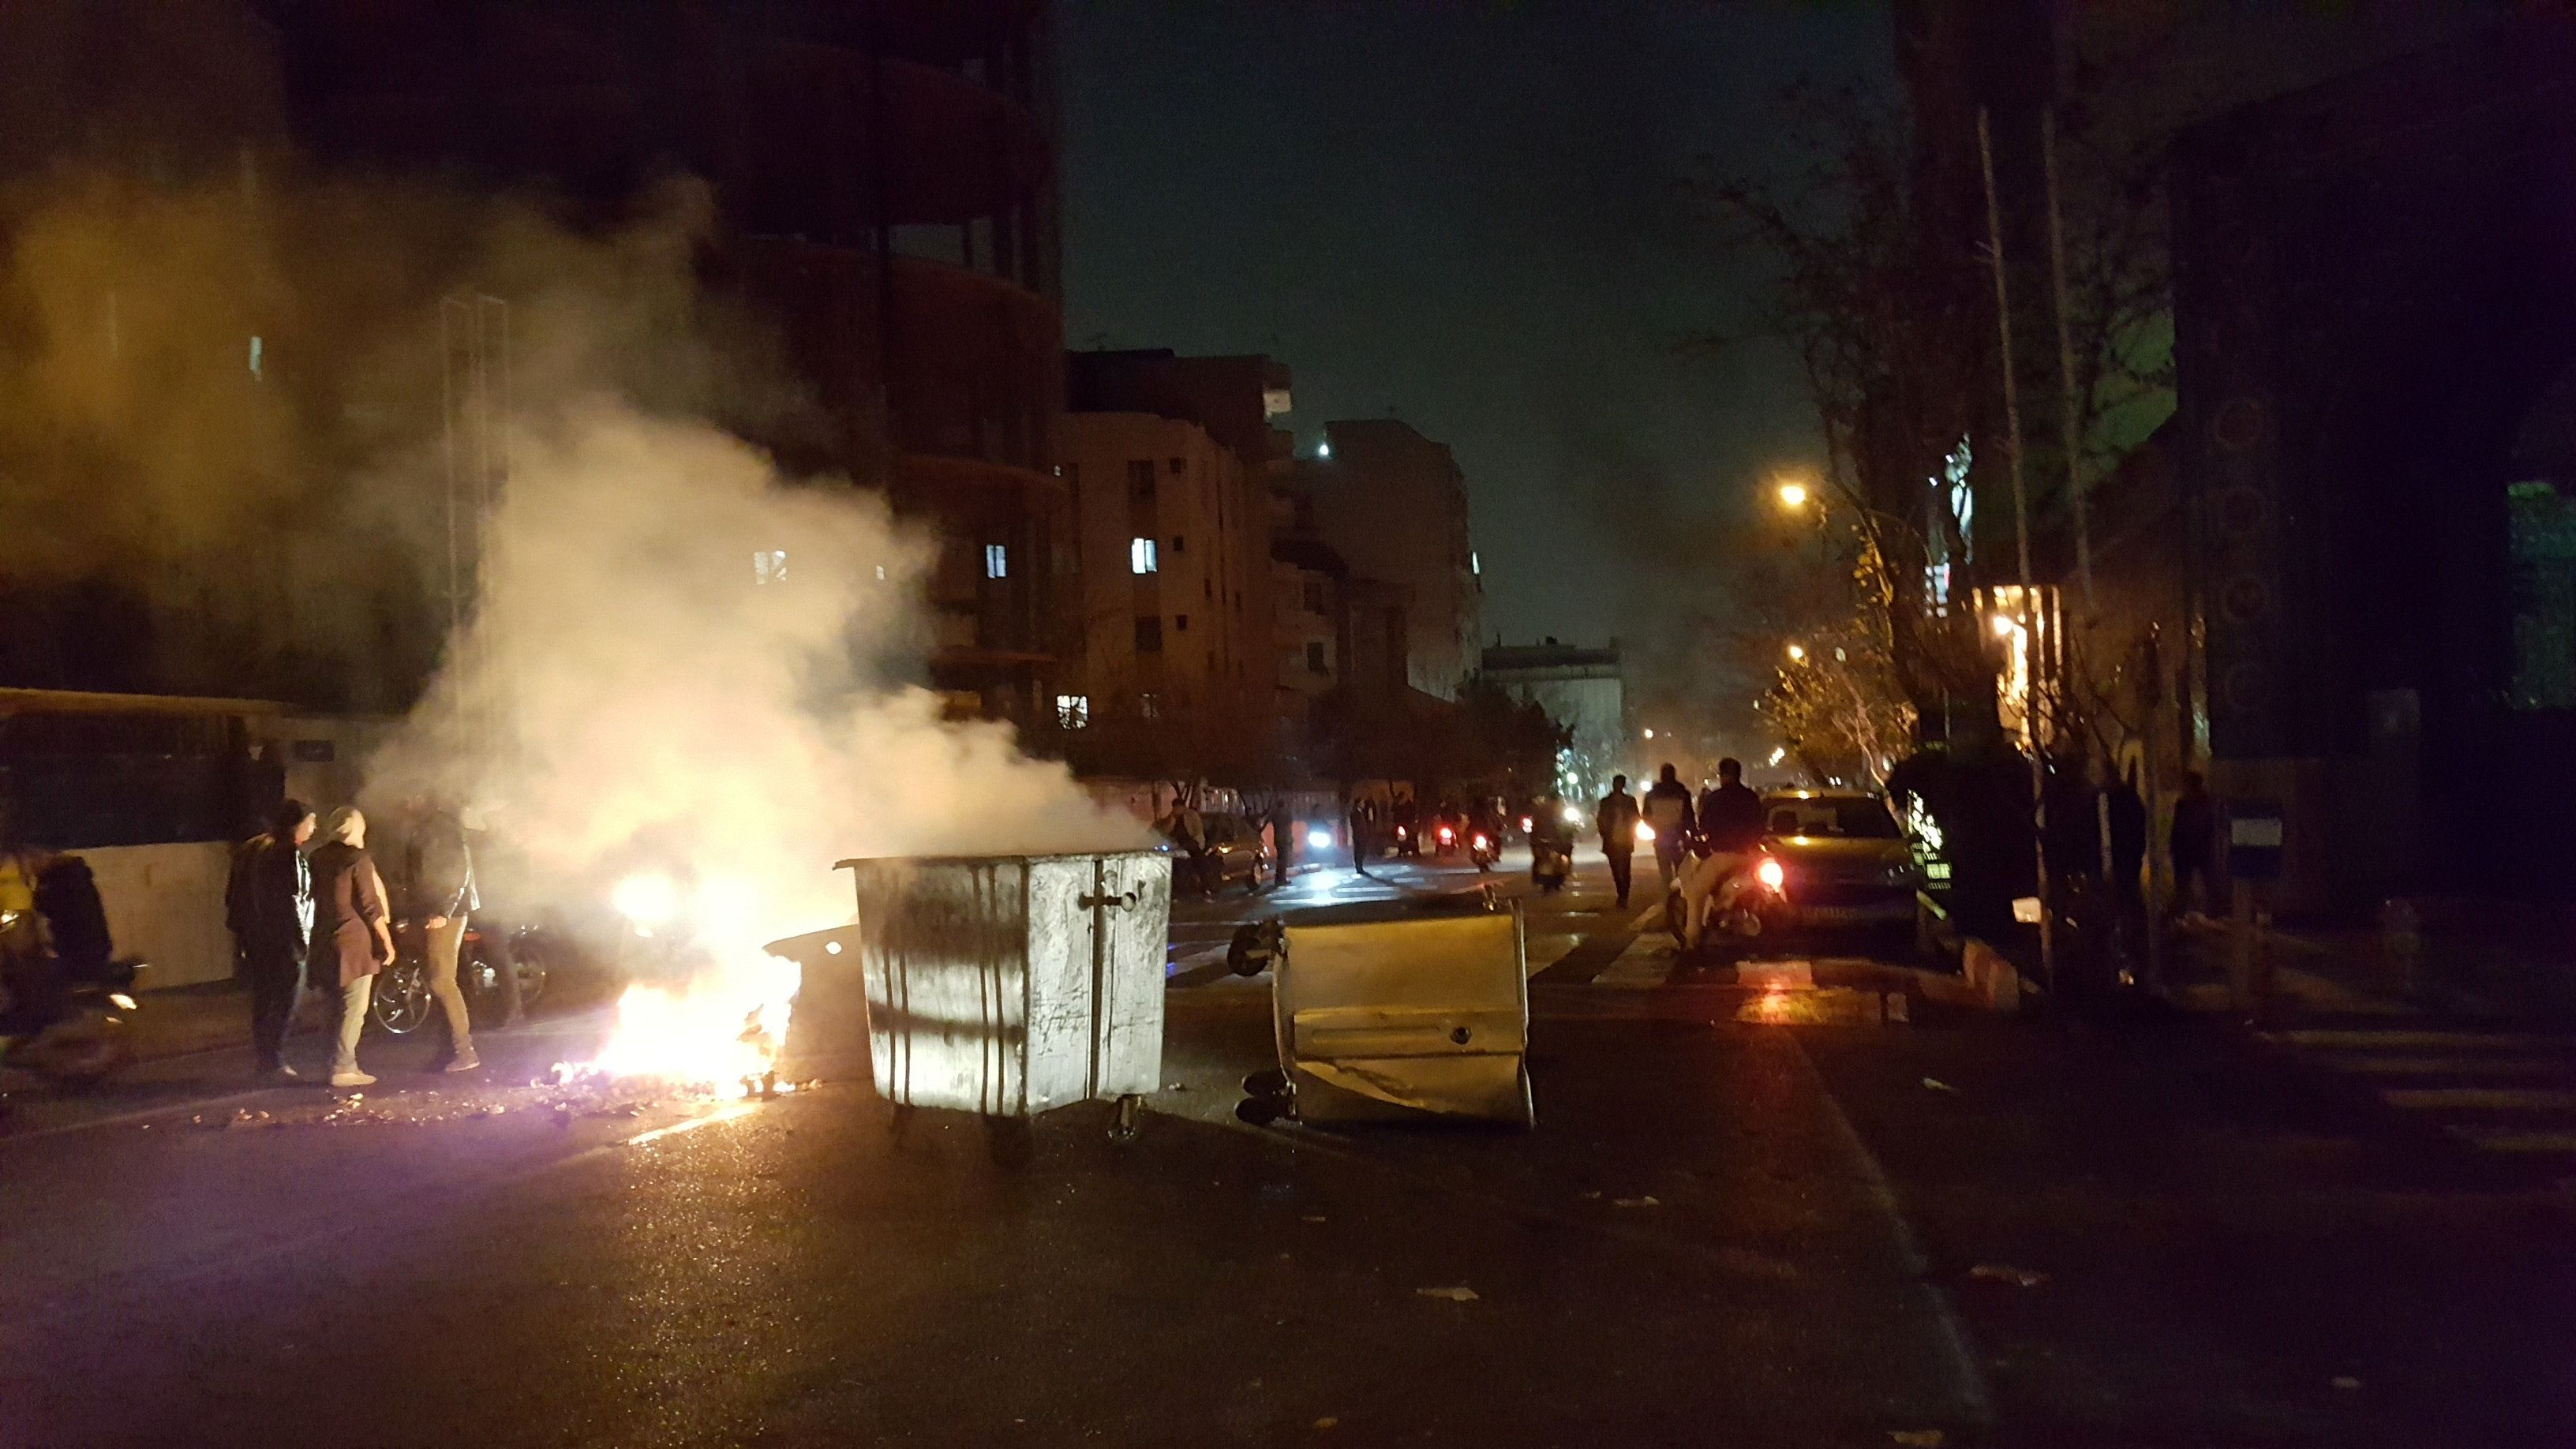 Iran's top leader blames protests on meddling by 'enemies'